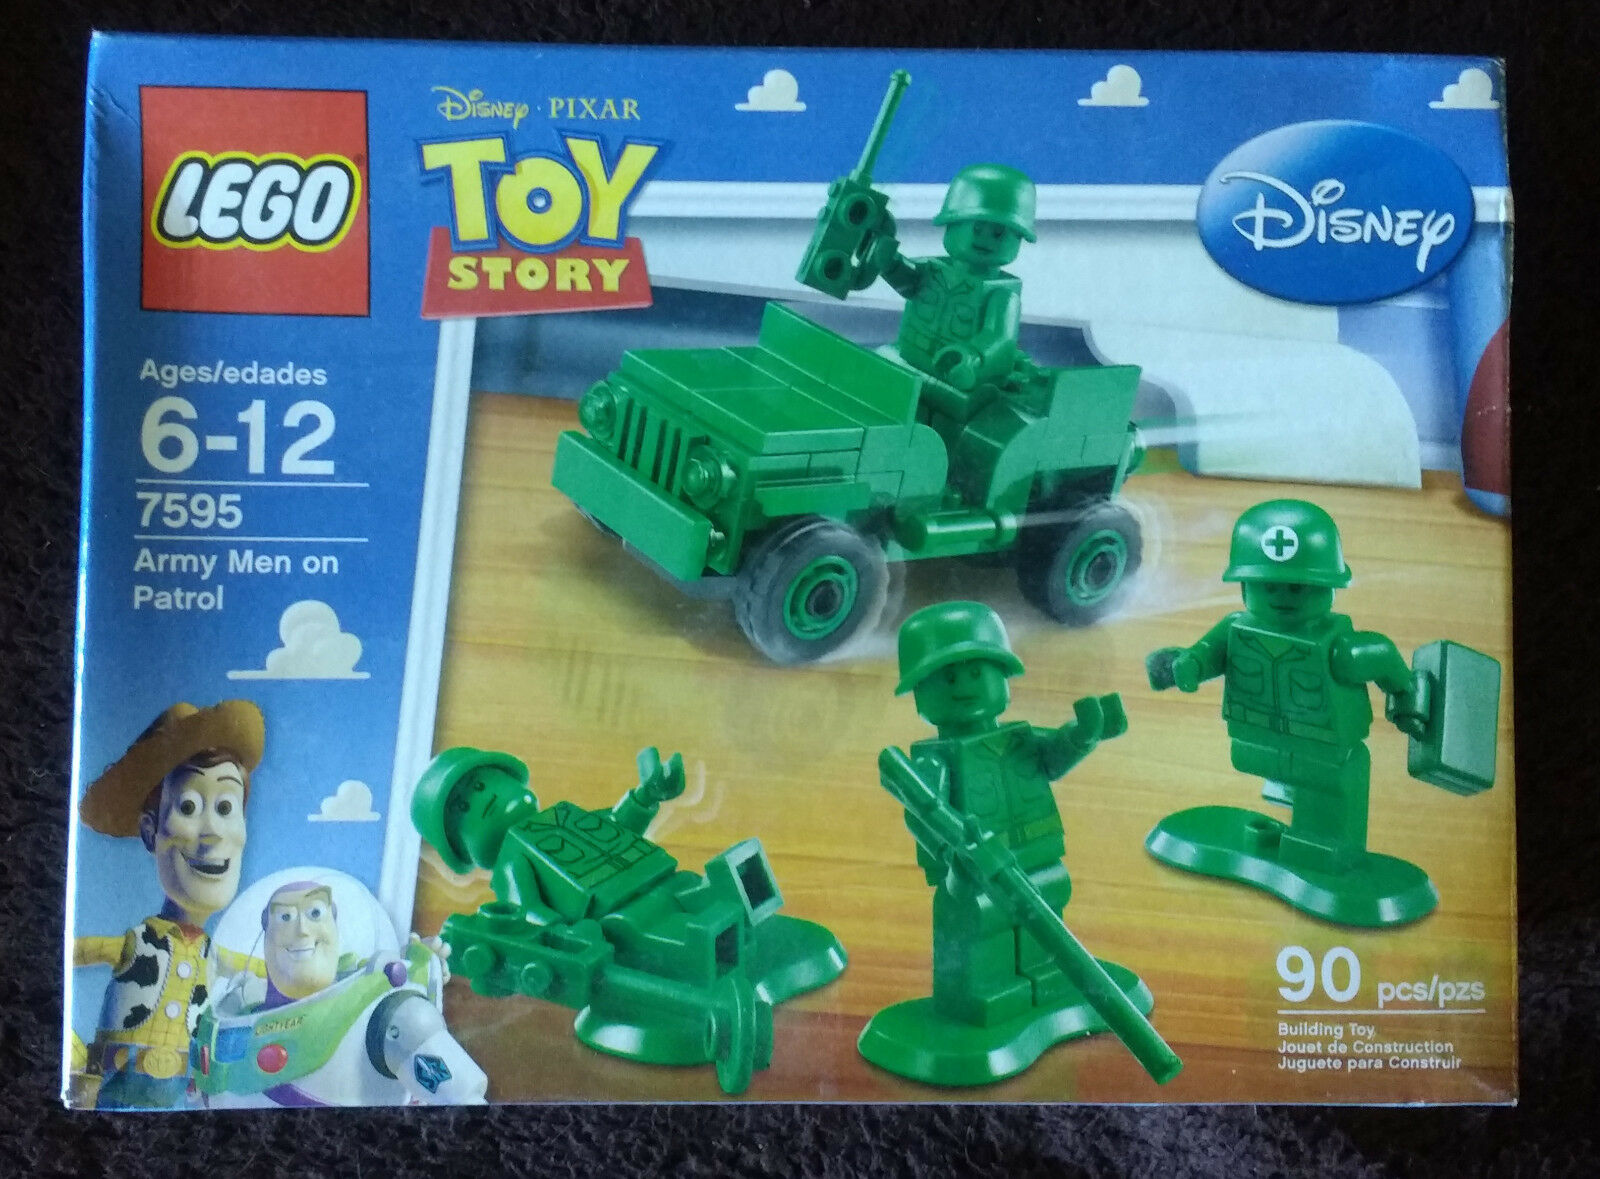 Lego Toy Story Army Men on Patrol (7595) + Army Jeep (30071) New MISB OOP